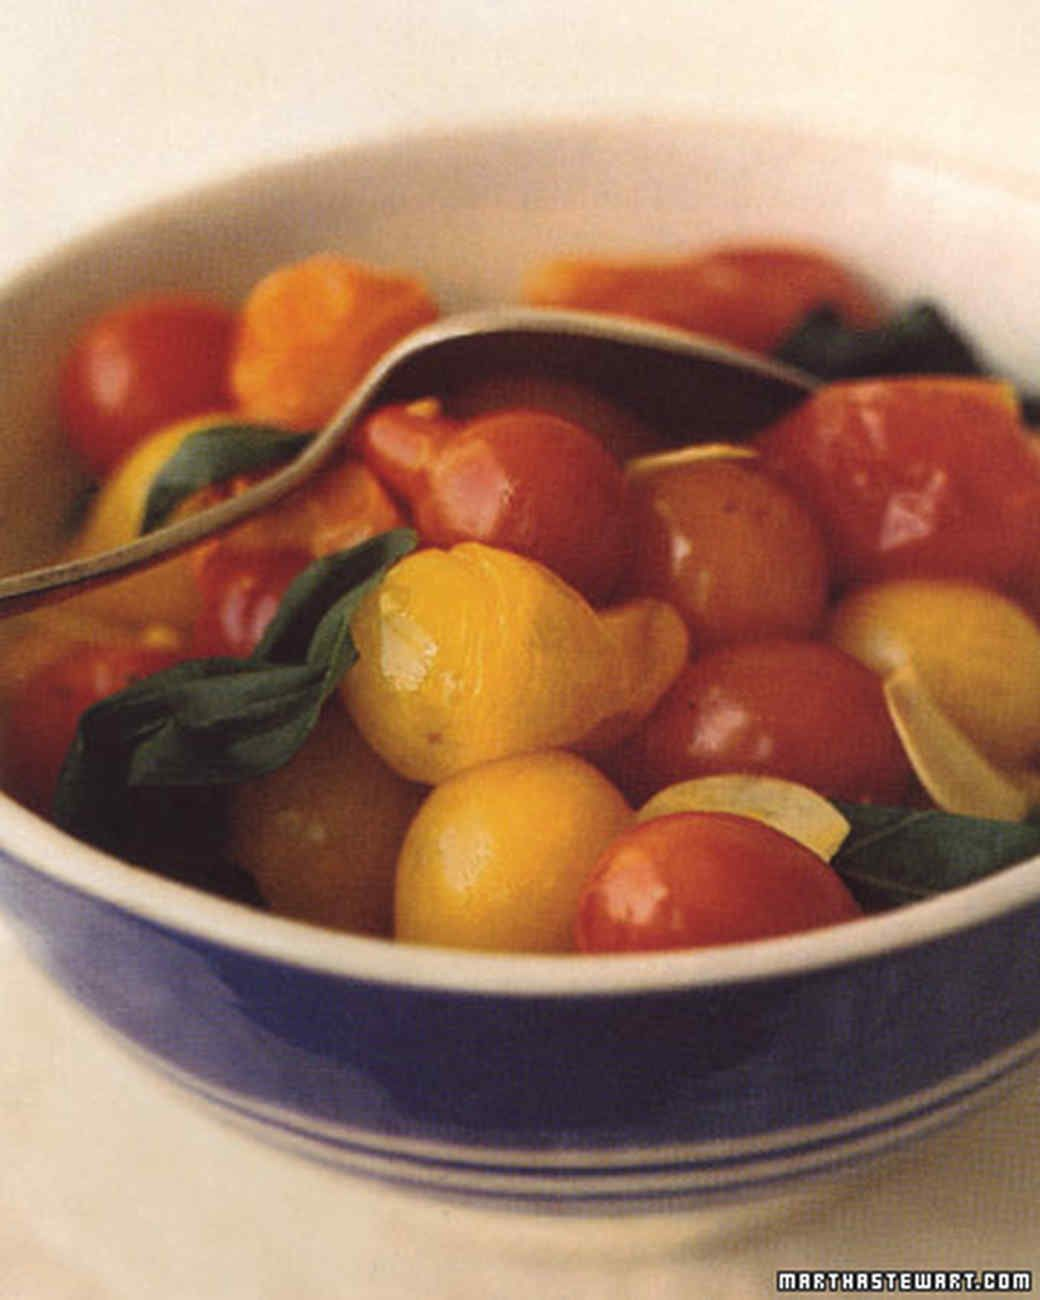 Heat plumps the tiny tomatoes, creating a luscious compote to top grilled foods or serve as a side dish.